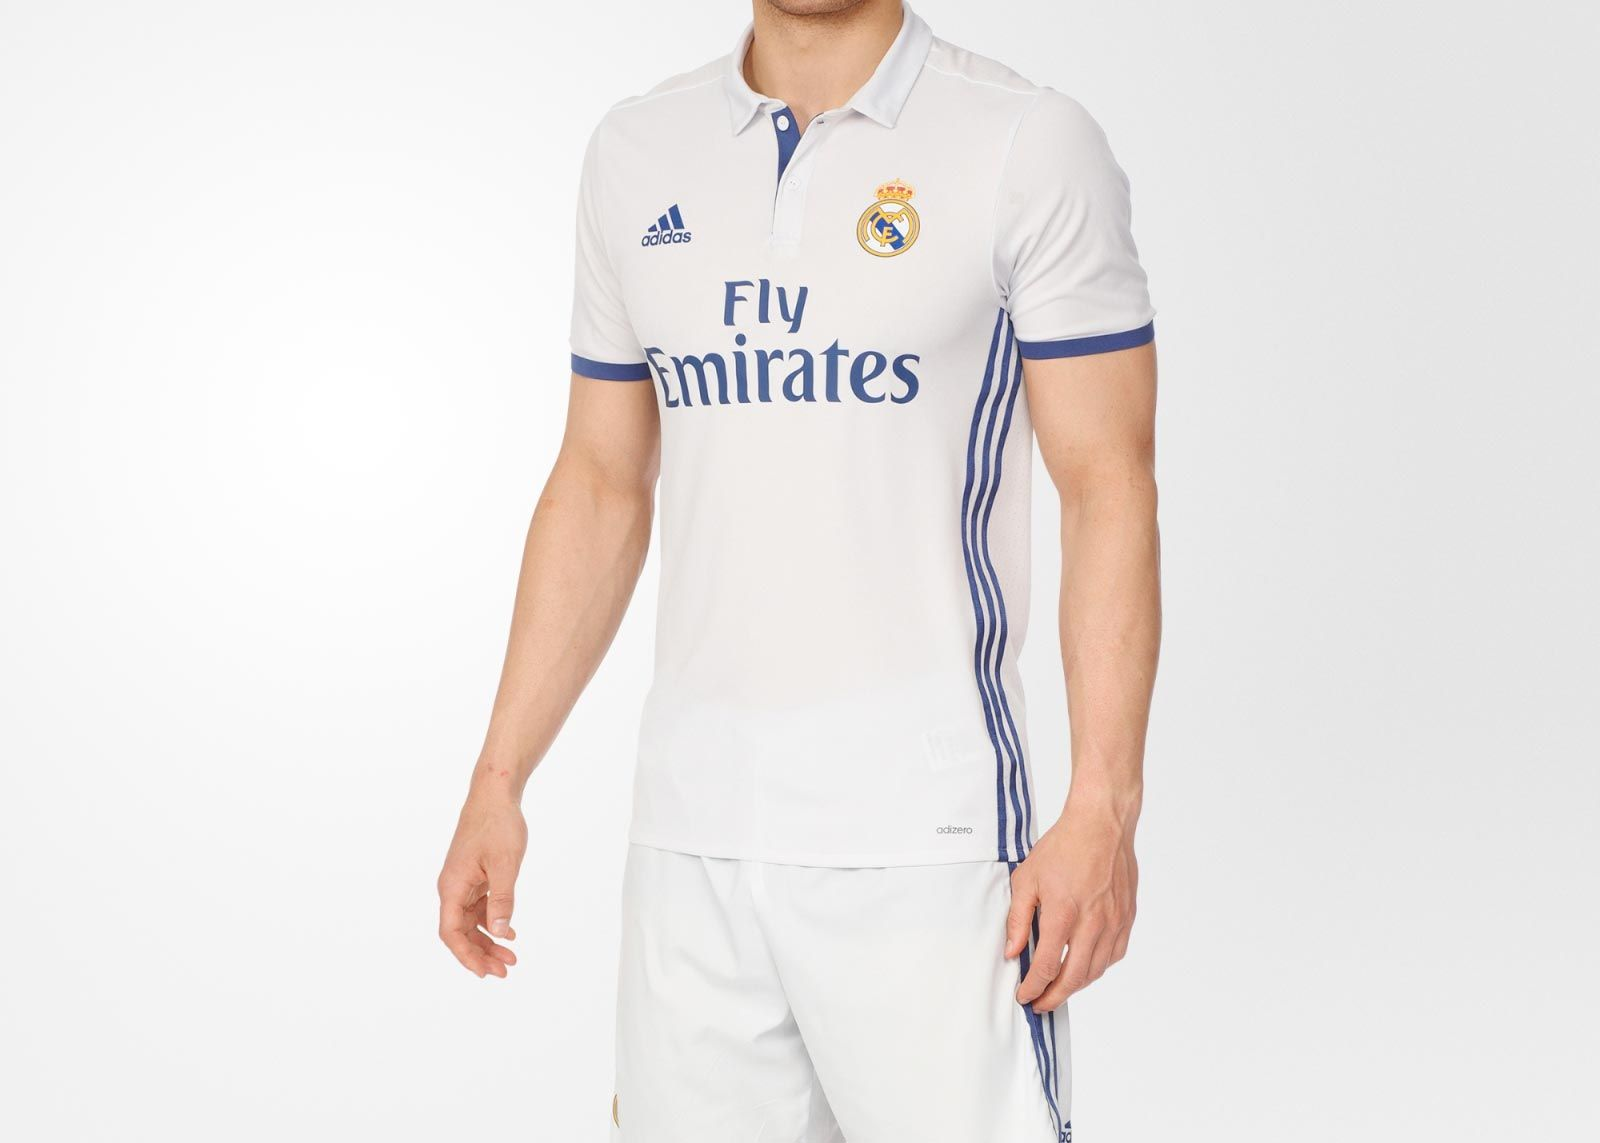 The new Real Madrid 16-17 home kit is white and blue cc0071417